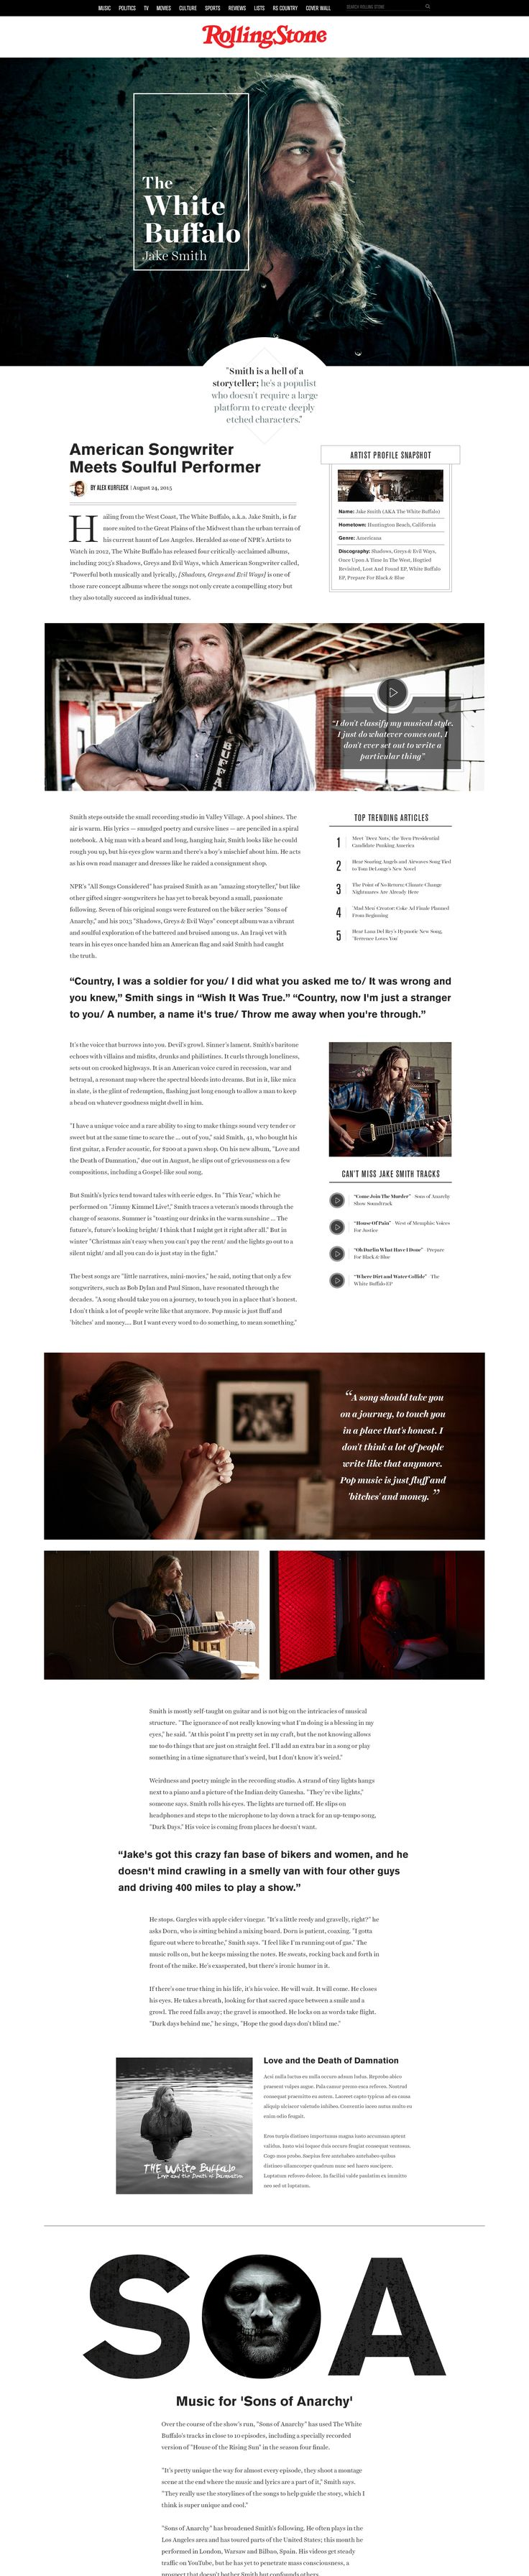 Rolling Stone website redesign concept by Jason Kirtley